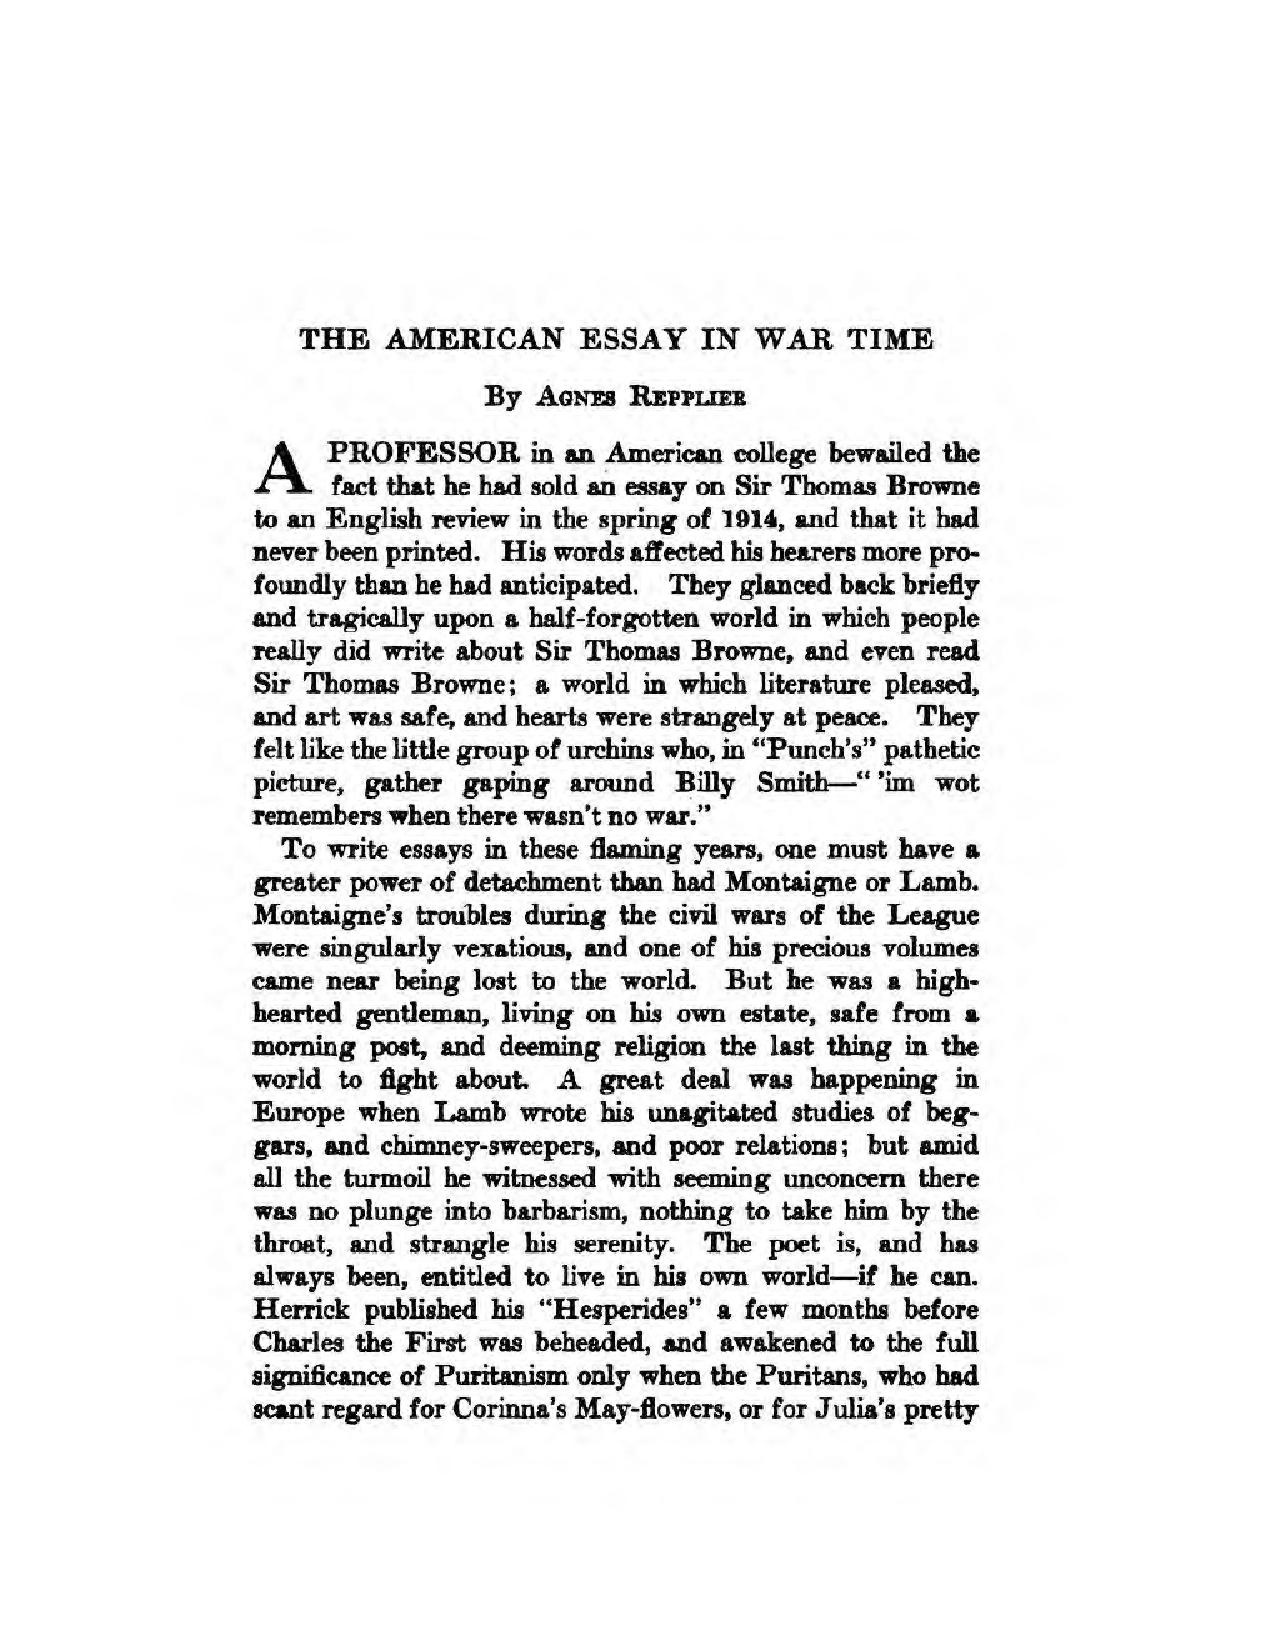 009 Essay Example What Is An American Page1 1275px The In War Time2c Agnes Repplier2c 1918 Stupendous Thesis Your Dream Ideas Full